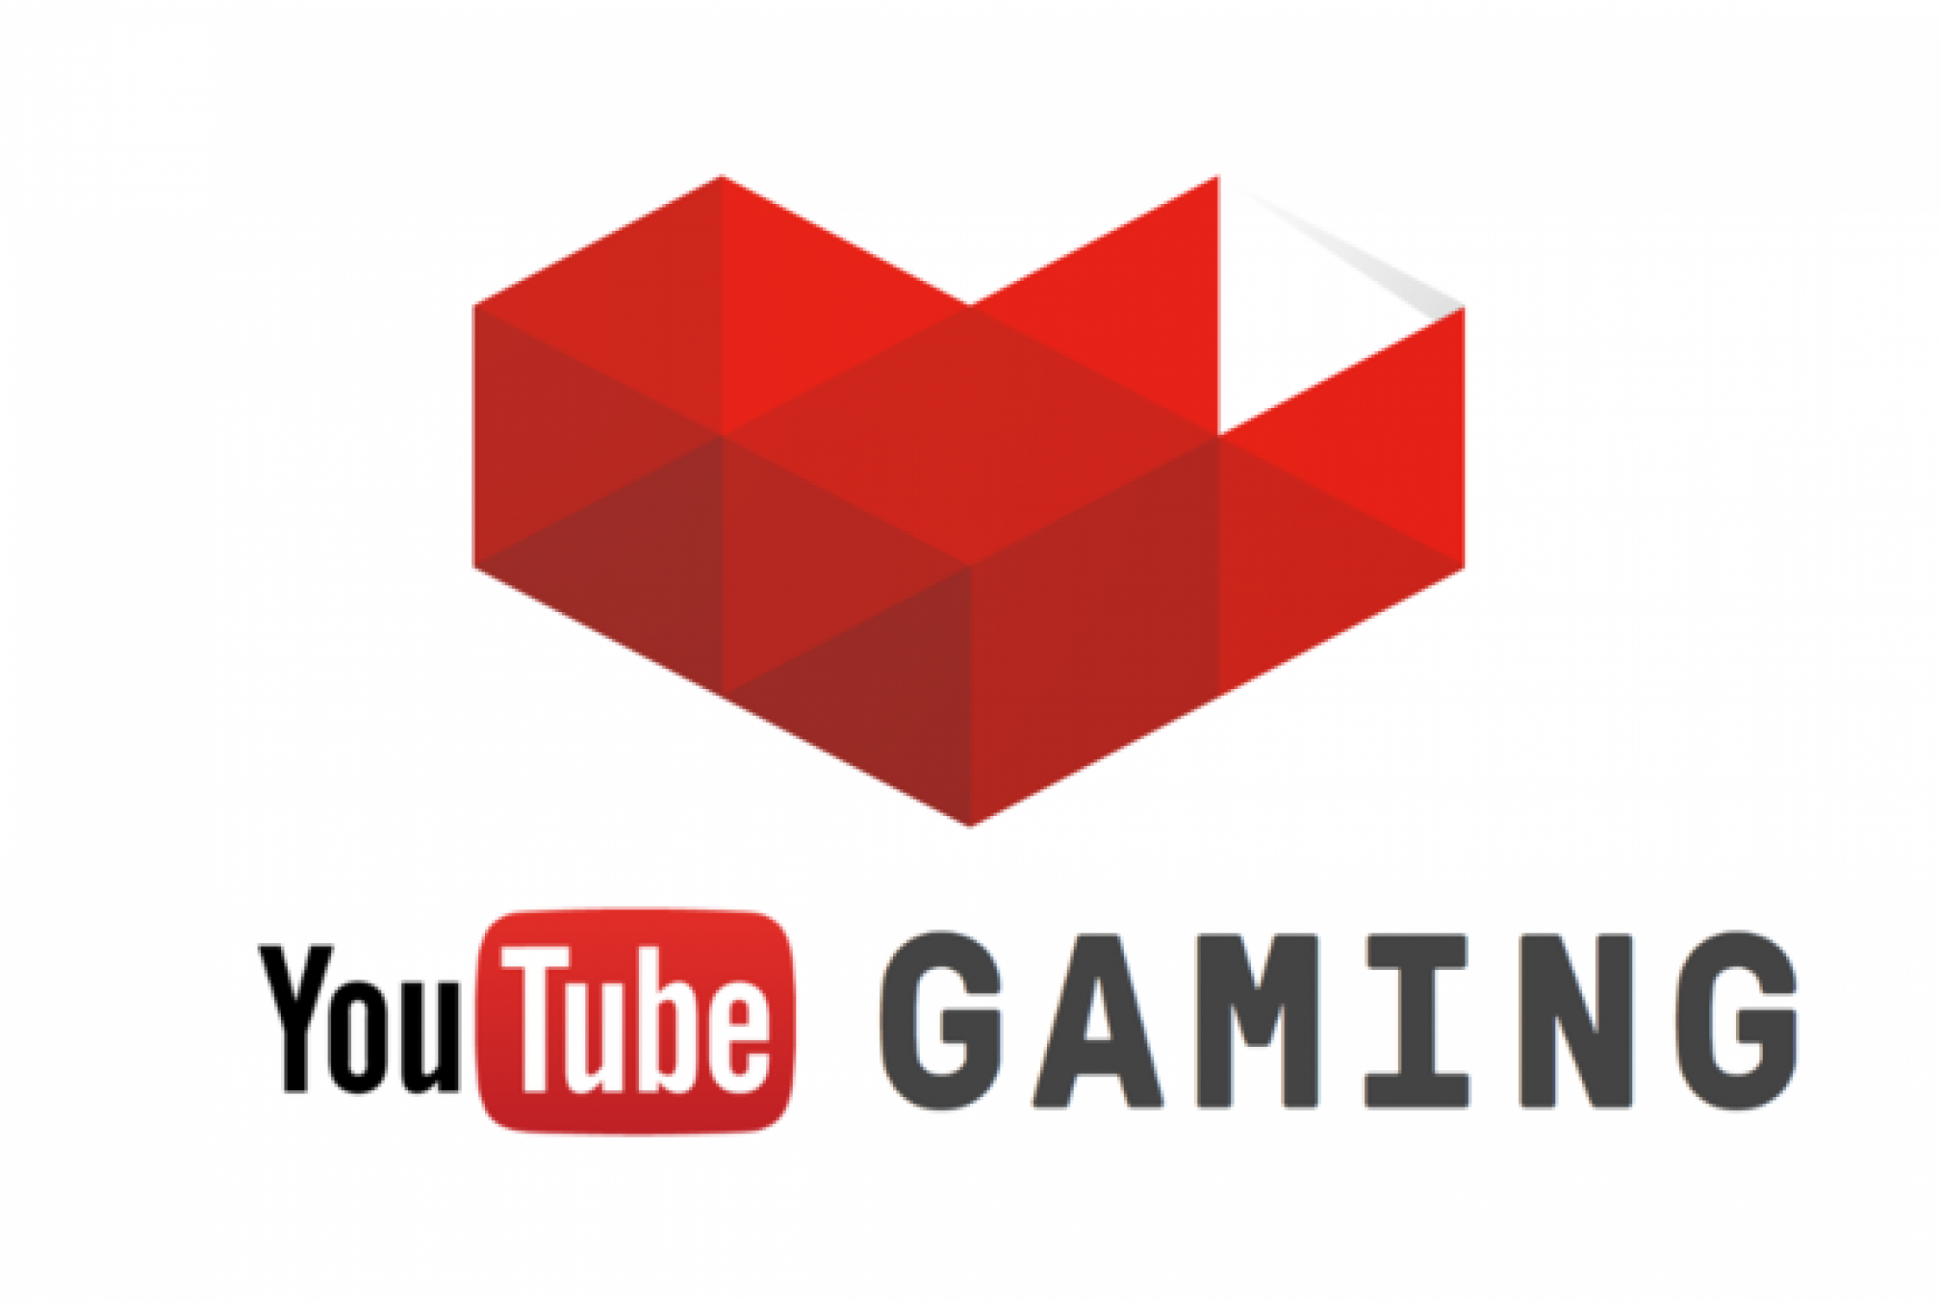 6194d5cda6f YouTube Gaming Image. Write Your Review